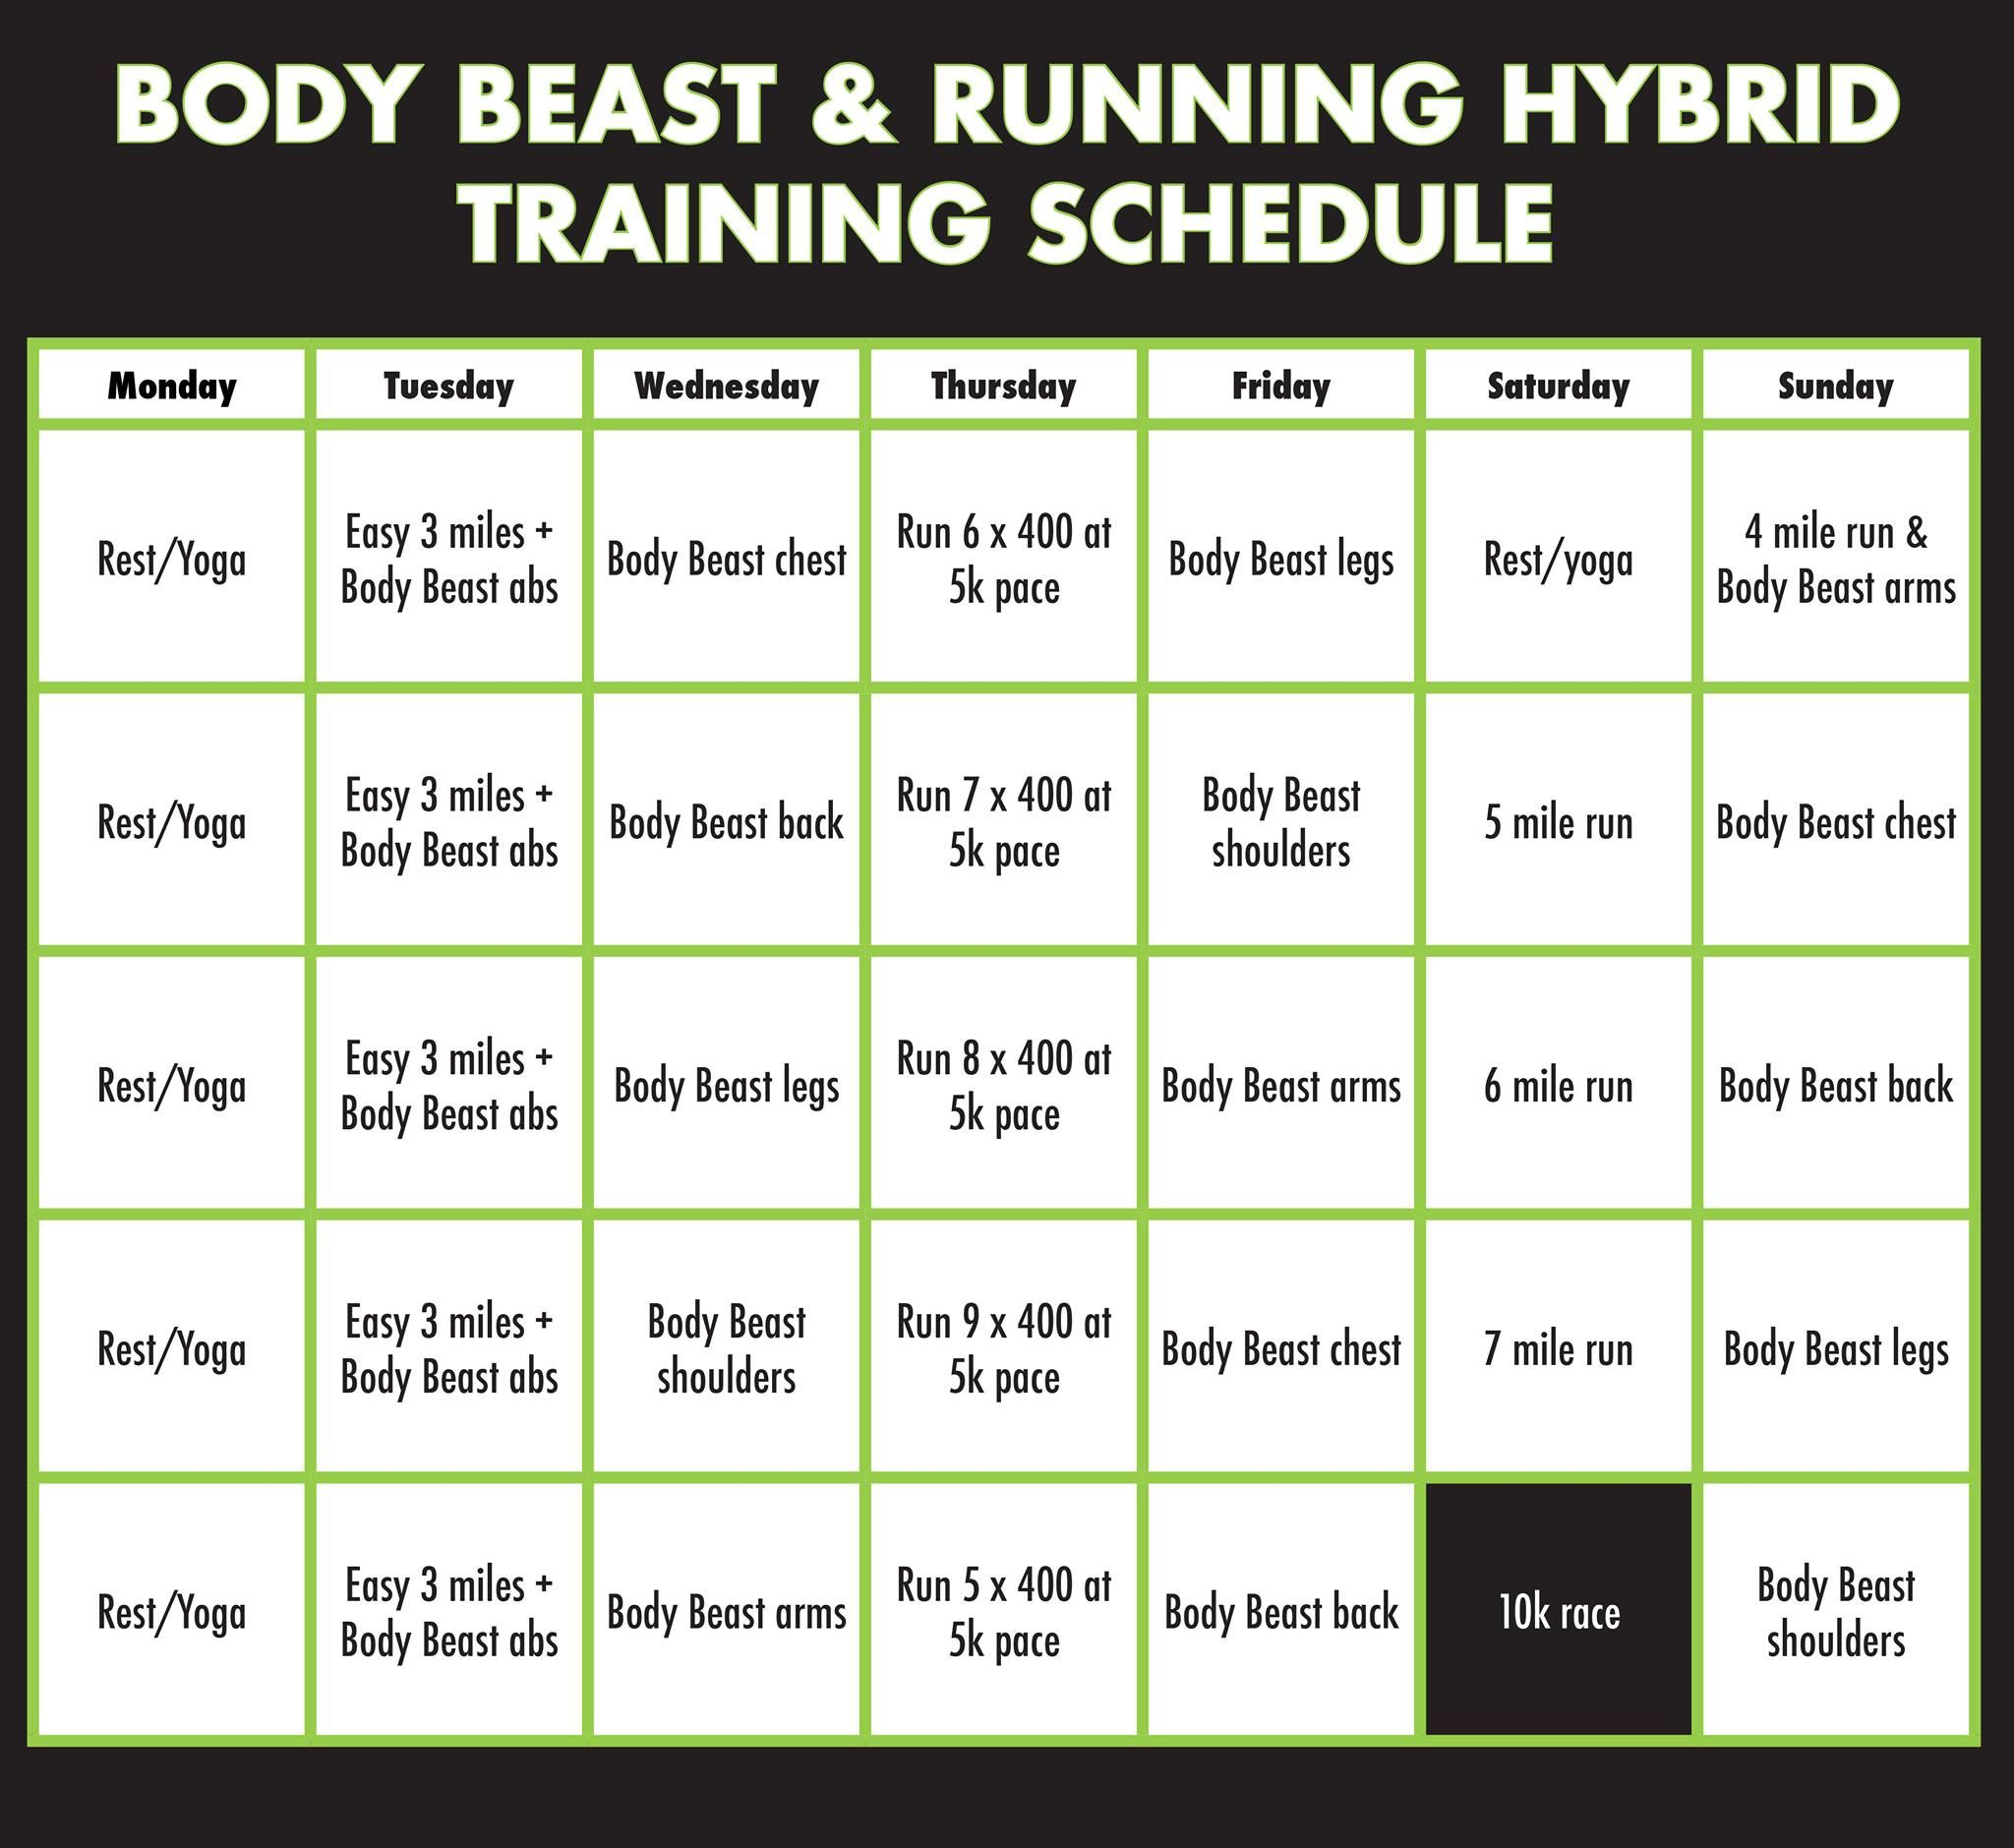 Body Beast  Running Hybrid Training Schedule  Health  Fitness